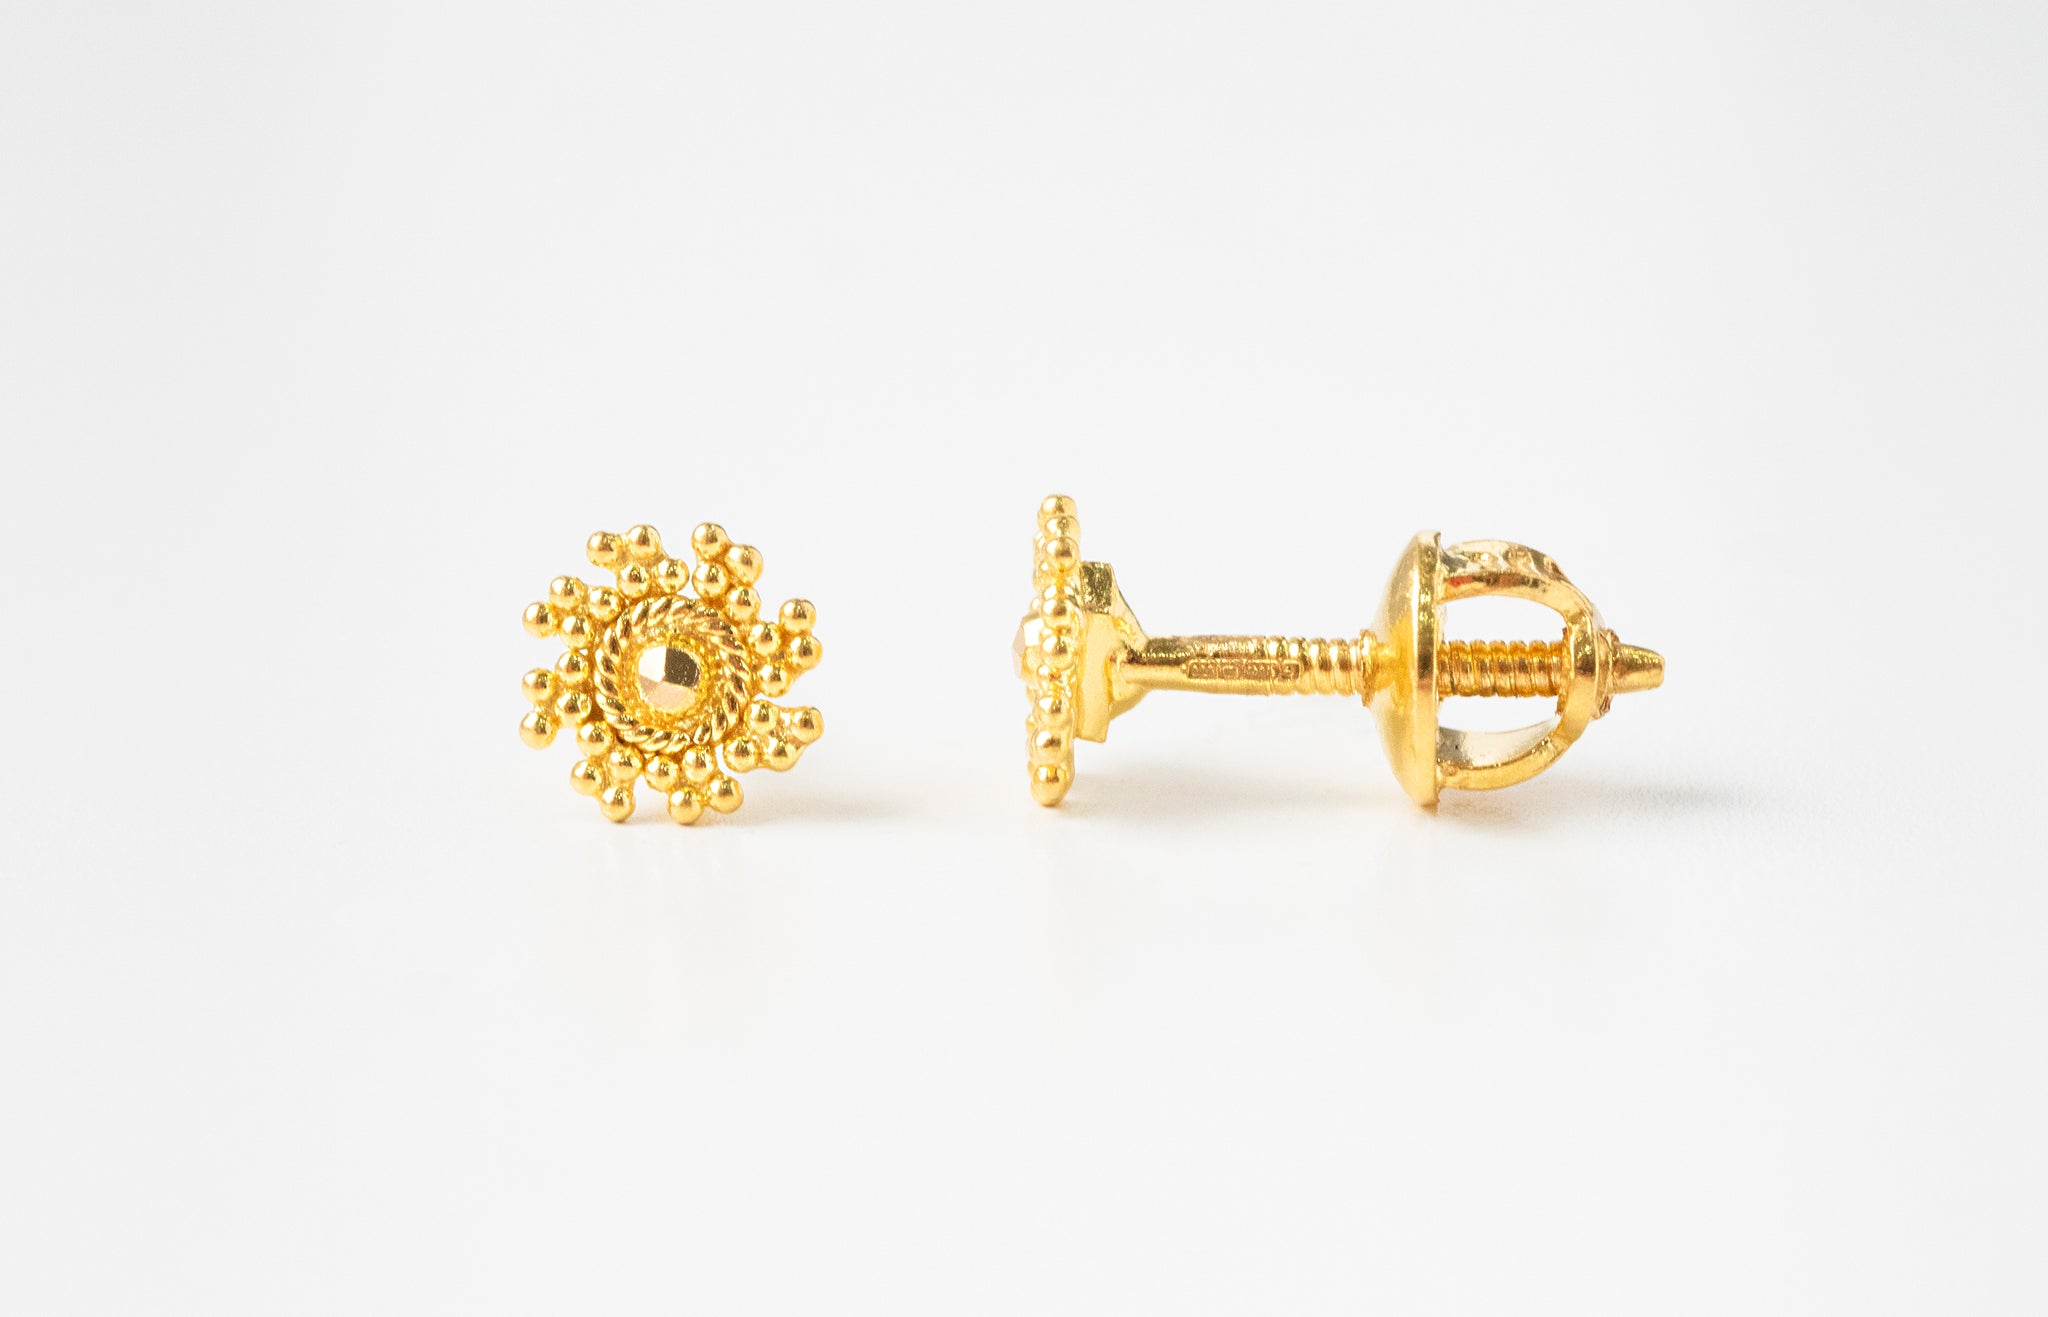 22ct Gold Diamond Cut Design Ear Studs (1.3g) E-7777